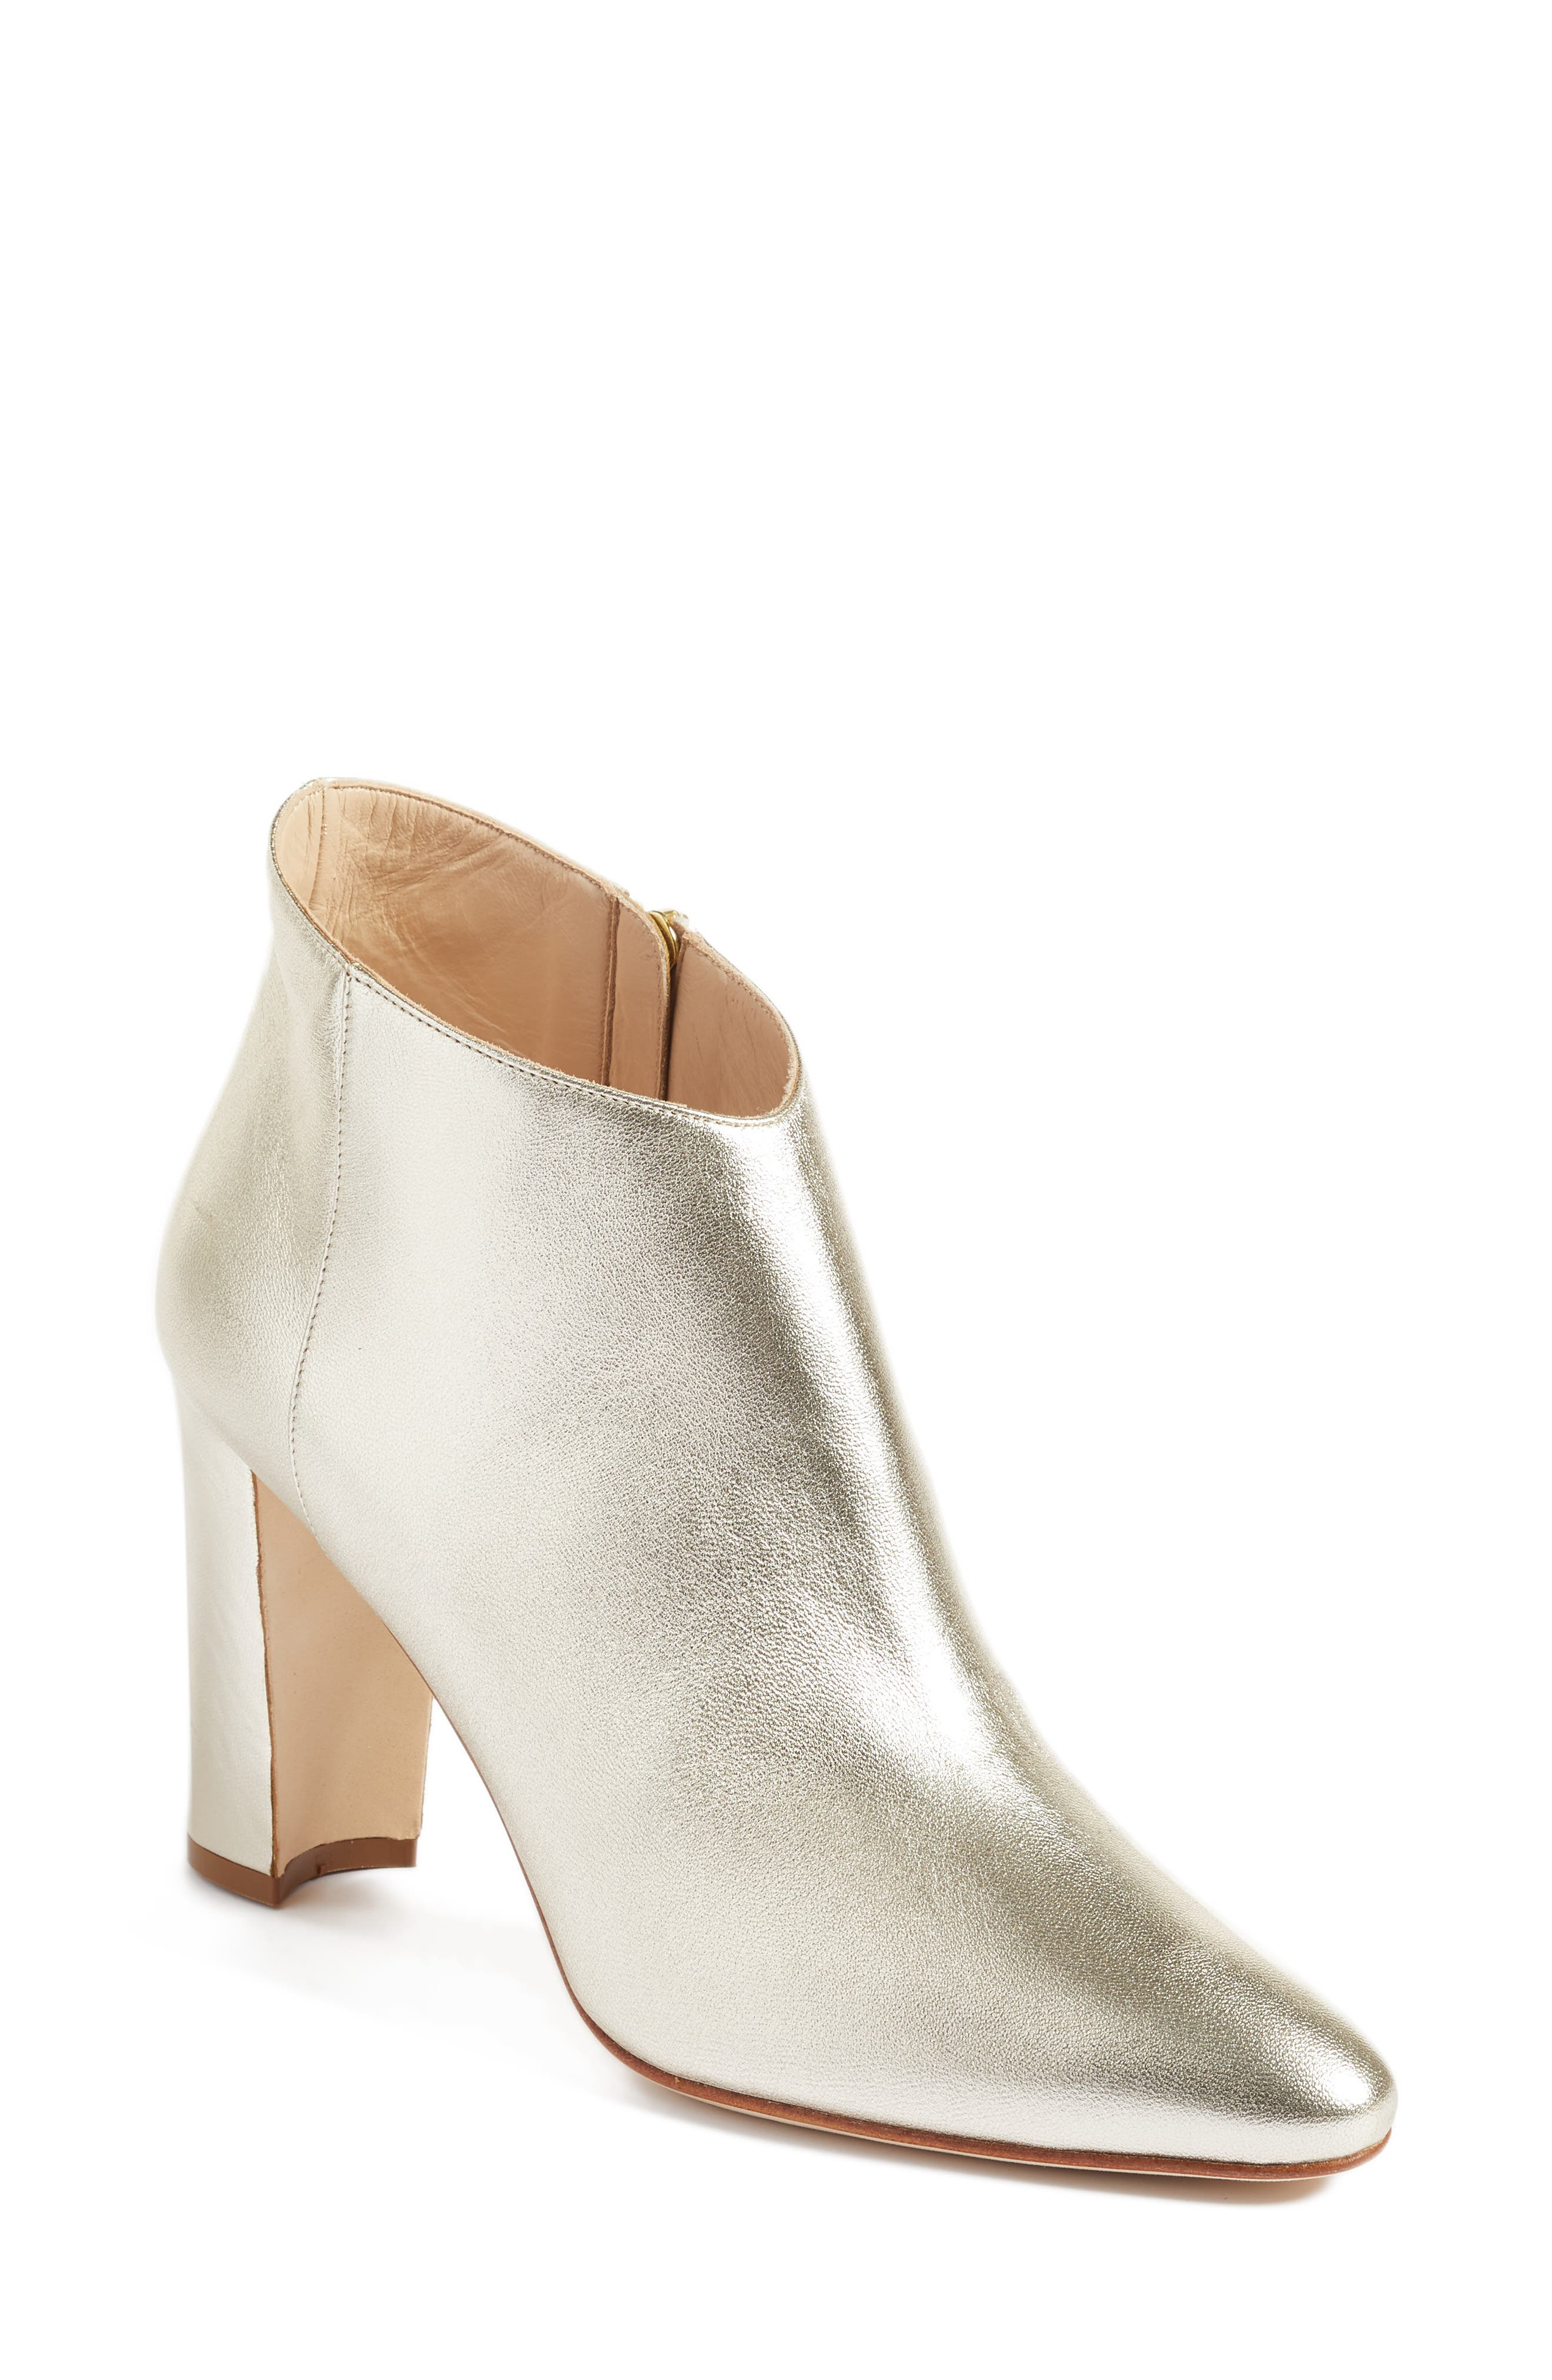 'Brusta'  Bootie,                             Main thumbnail 1, color,                             Light Gold Leather